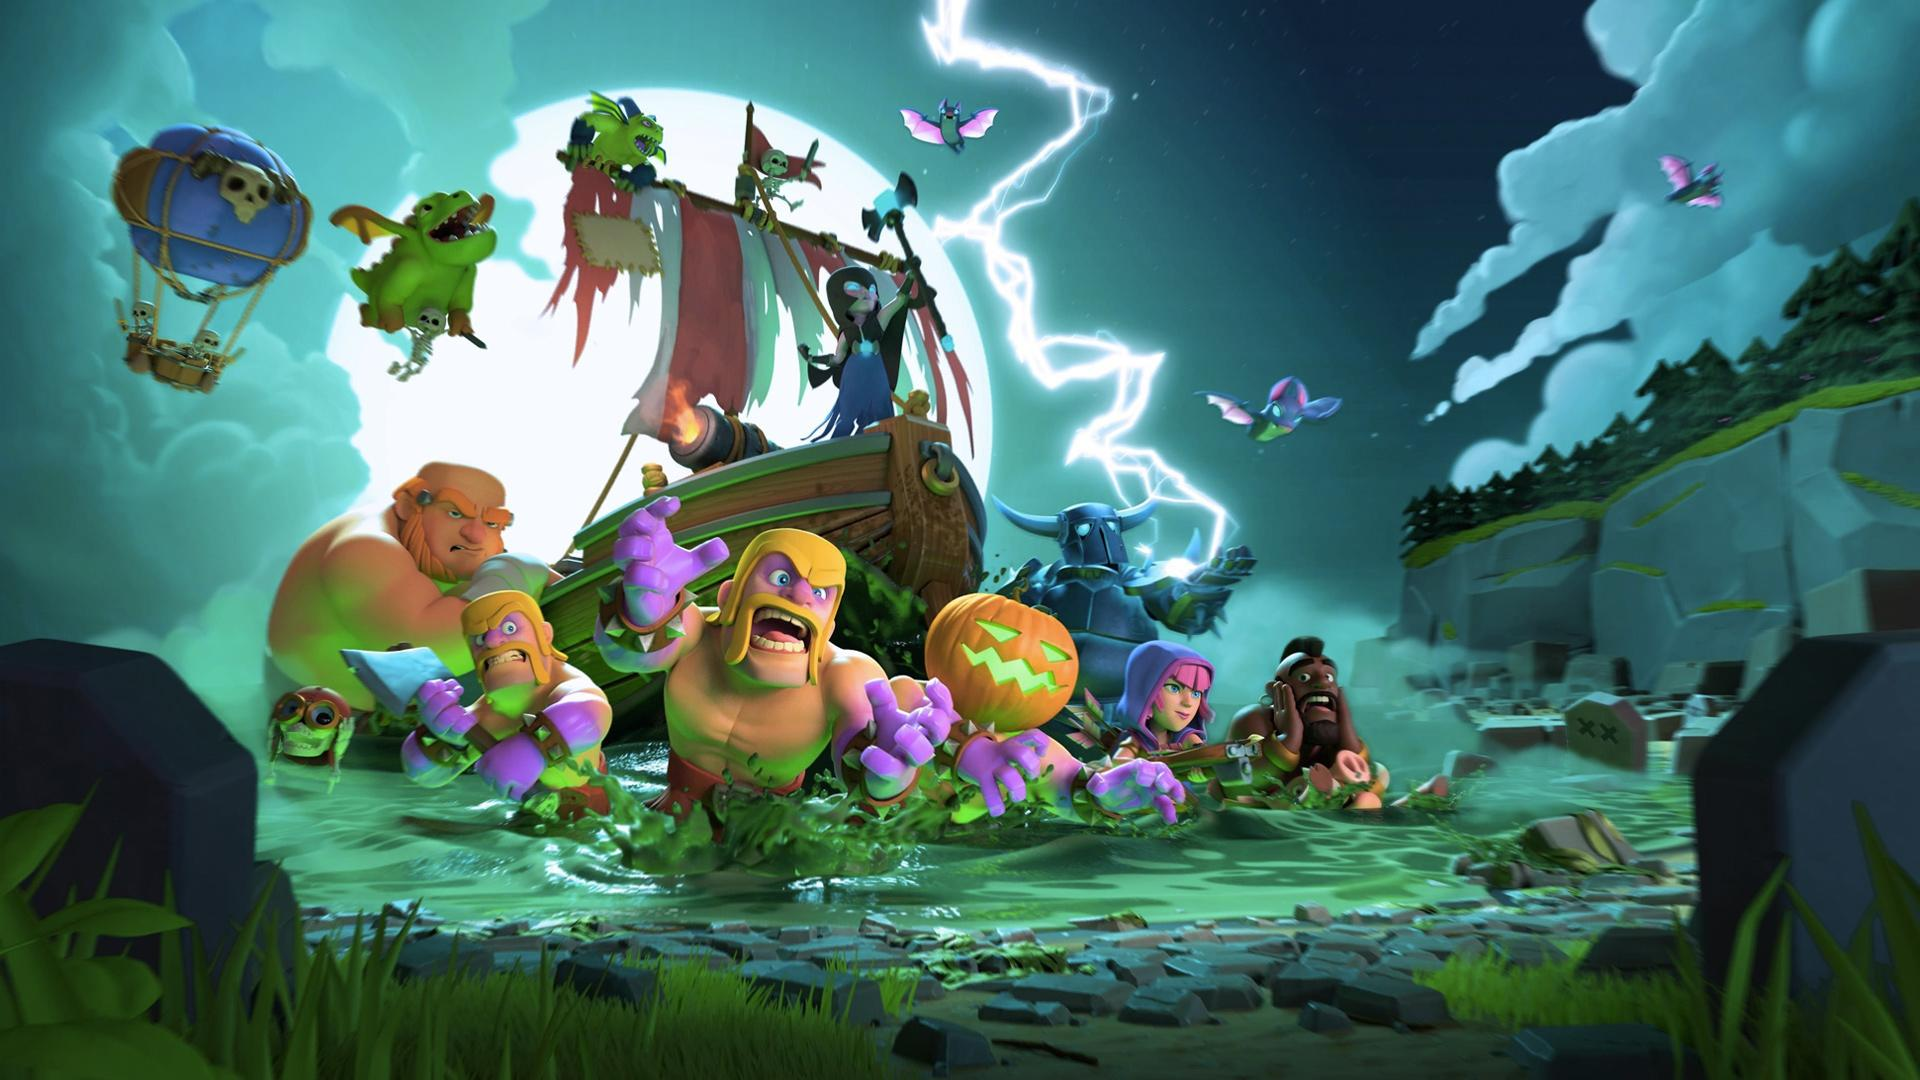 Clash of Clans Wallpapers Download now FREE